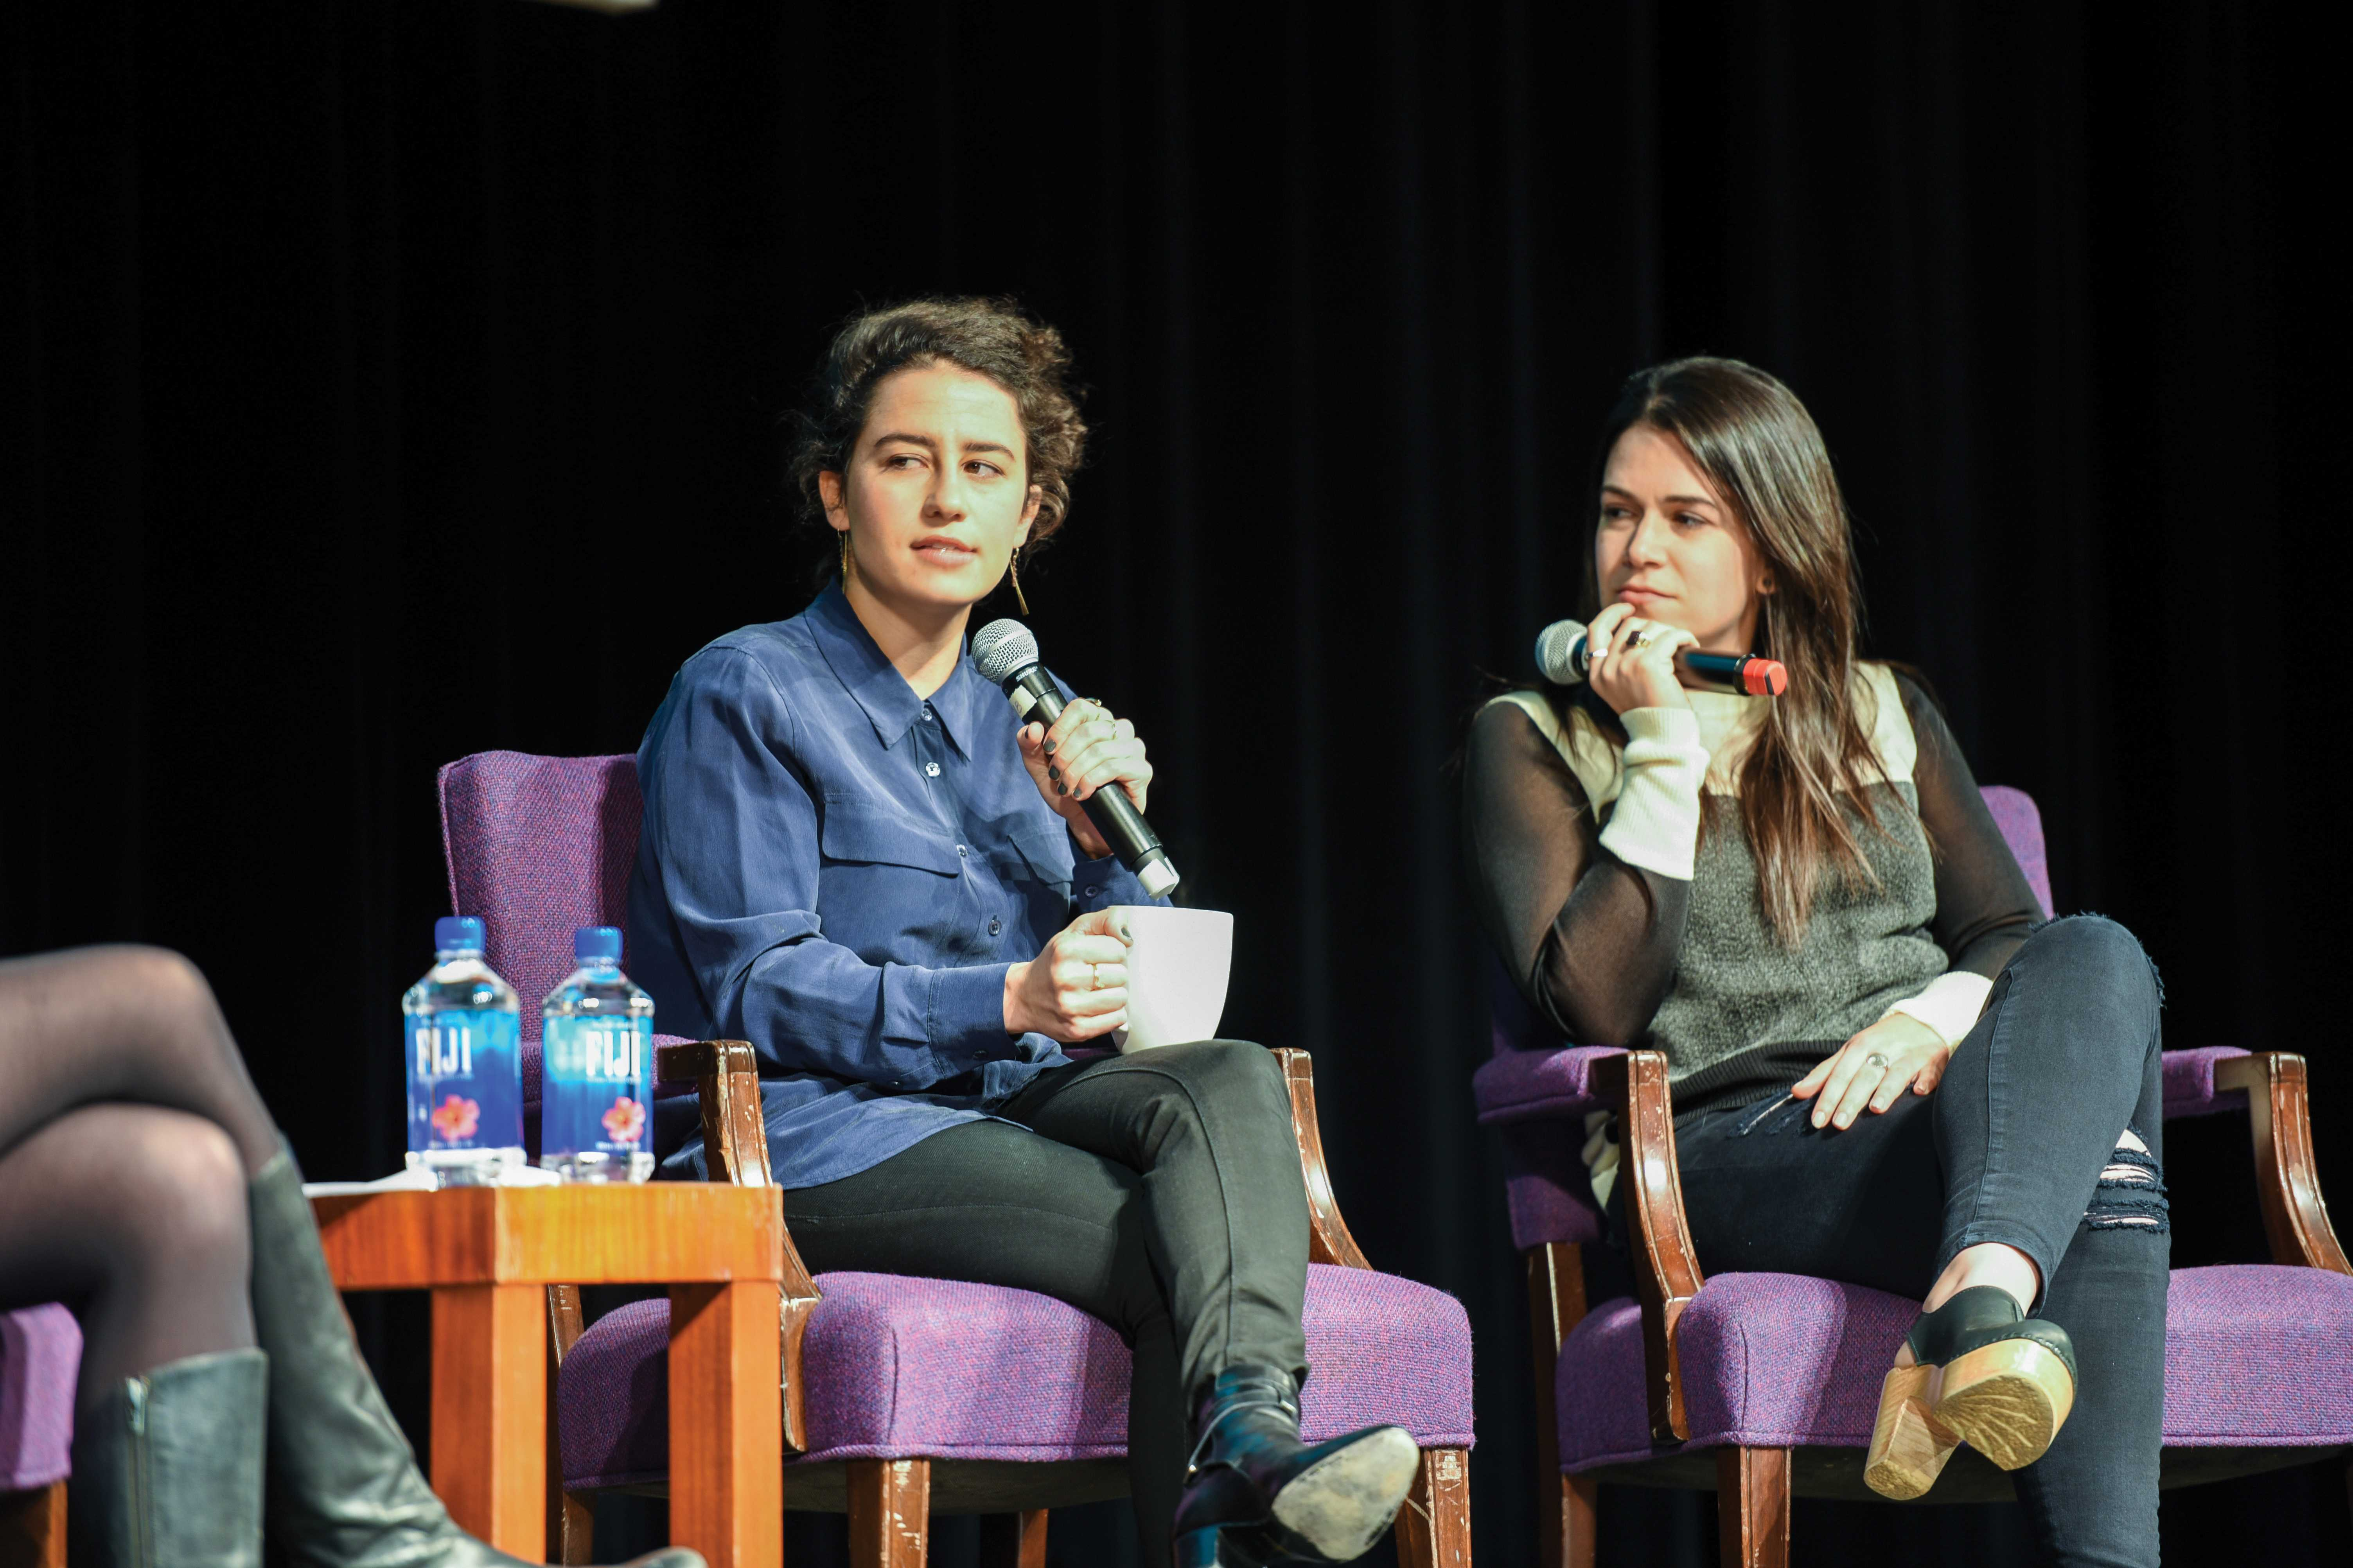 """Broad City"" stars Ilana Glazer and Abbi Jacobson speak about Judaism, comedy and TV success. A&O Productions and NU Hillel featured the duo as their fall speakers for a crowd of about 500 people."